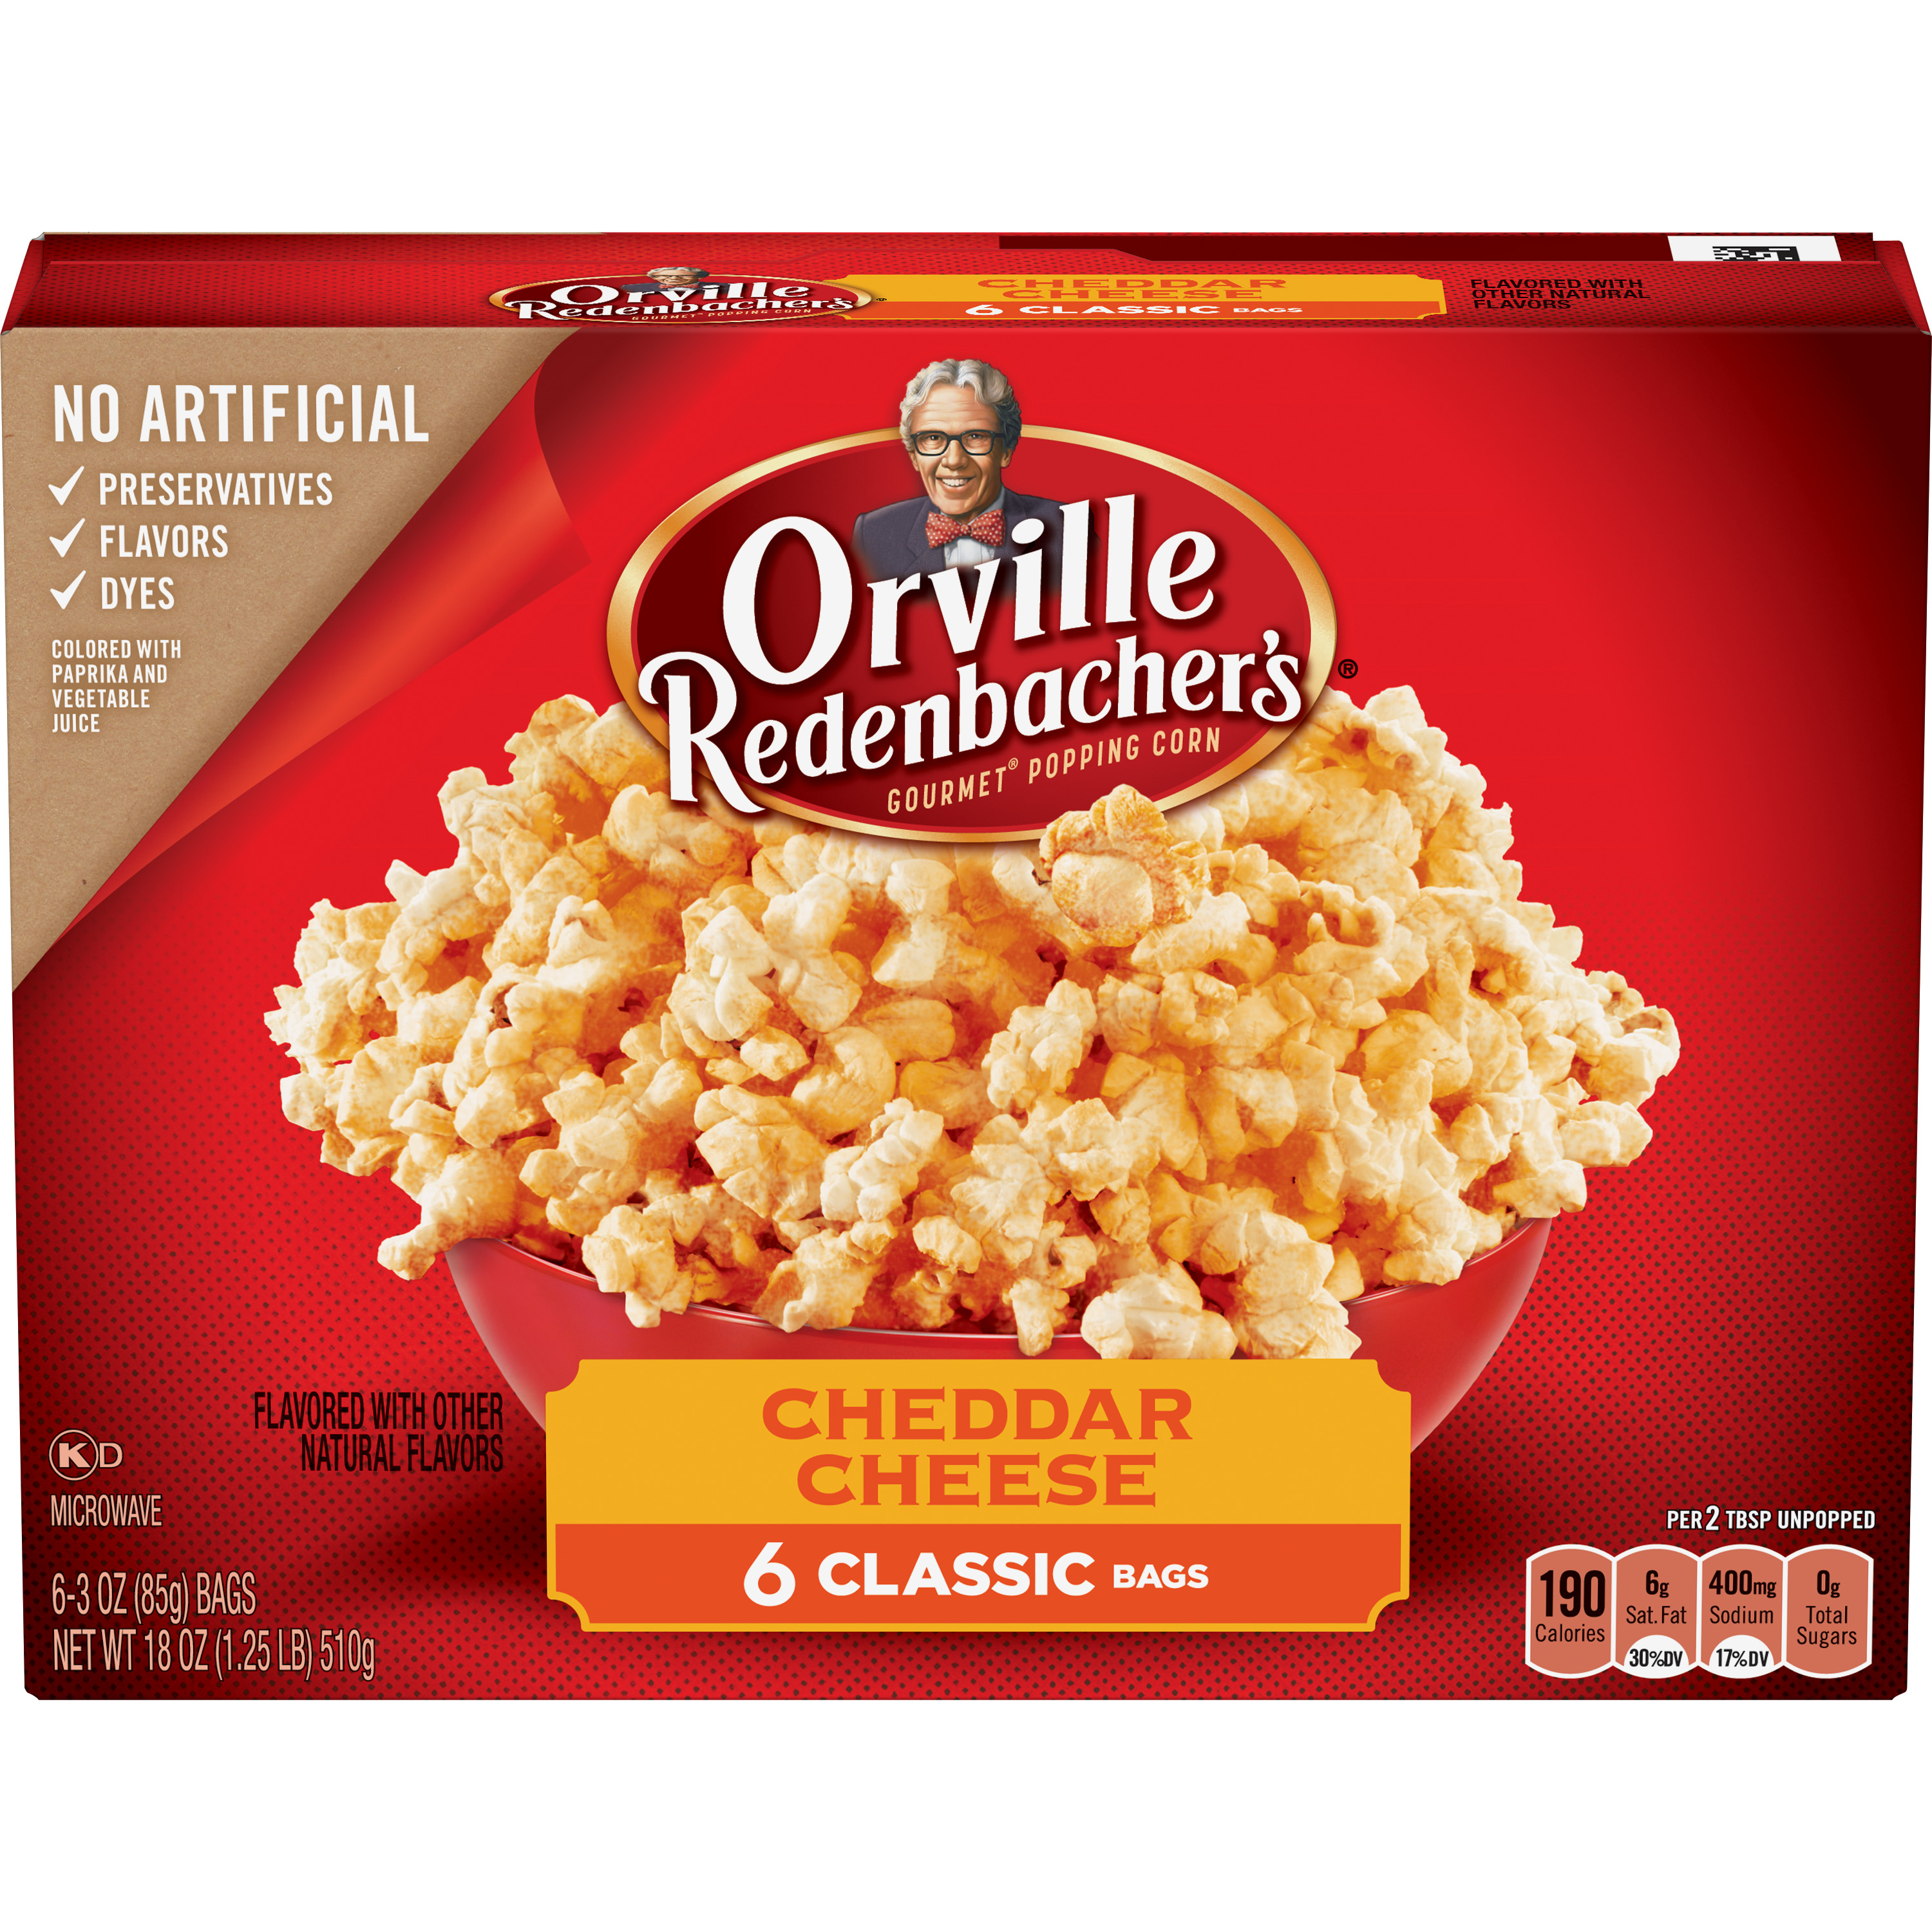 (4 Boxes) Orville Redenbacher's Microwave Popcorn, Cheddar Cheese, 6 Ct-$0.62/Bag